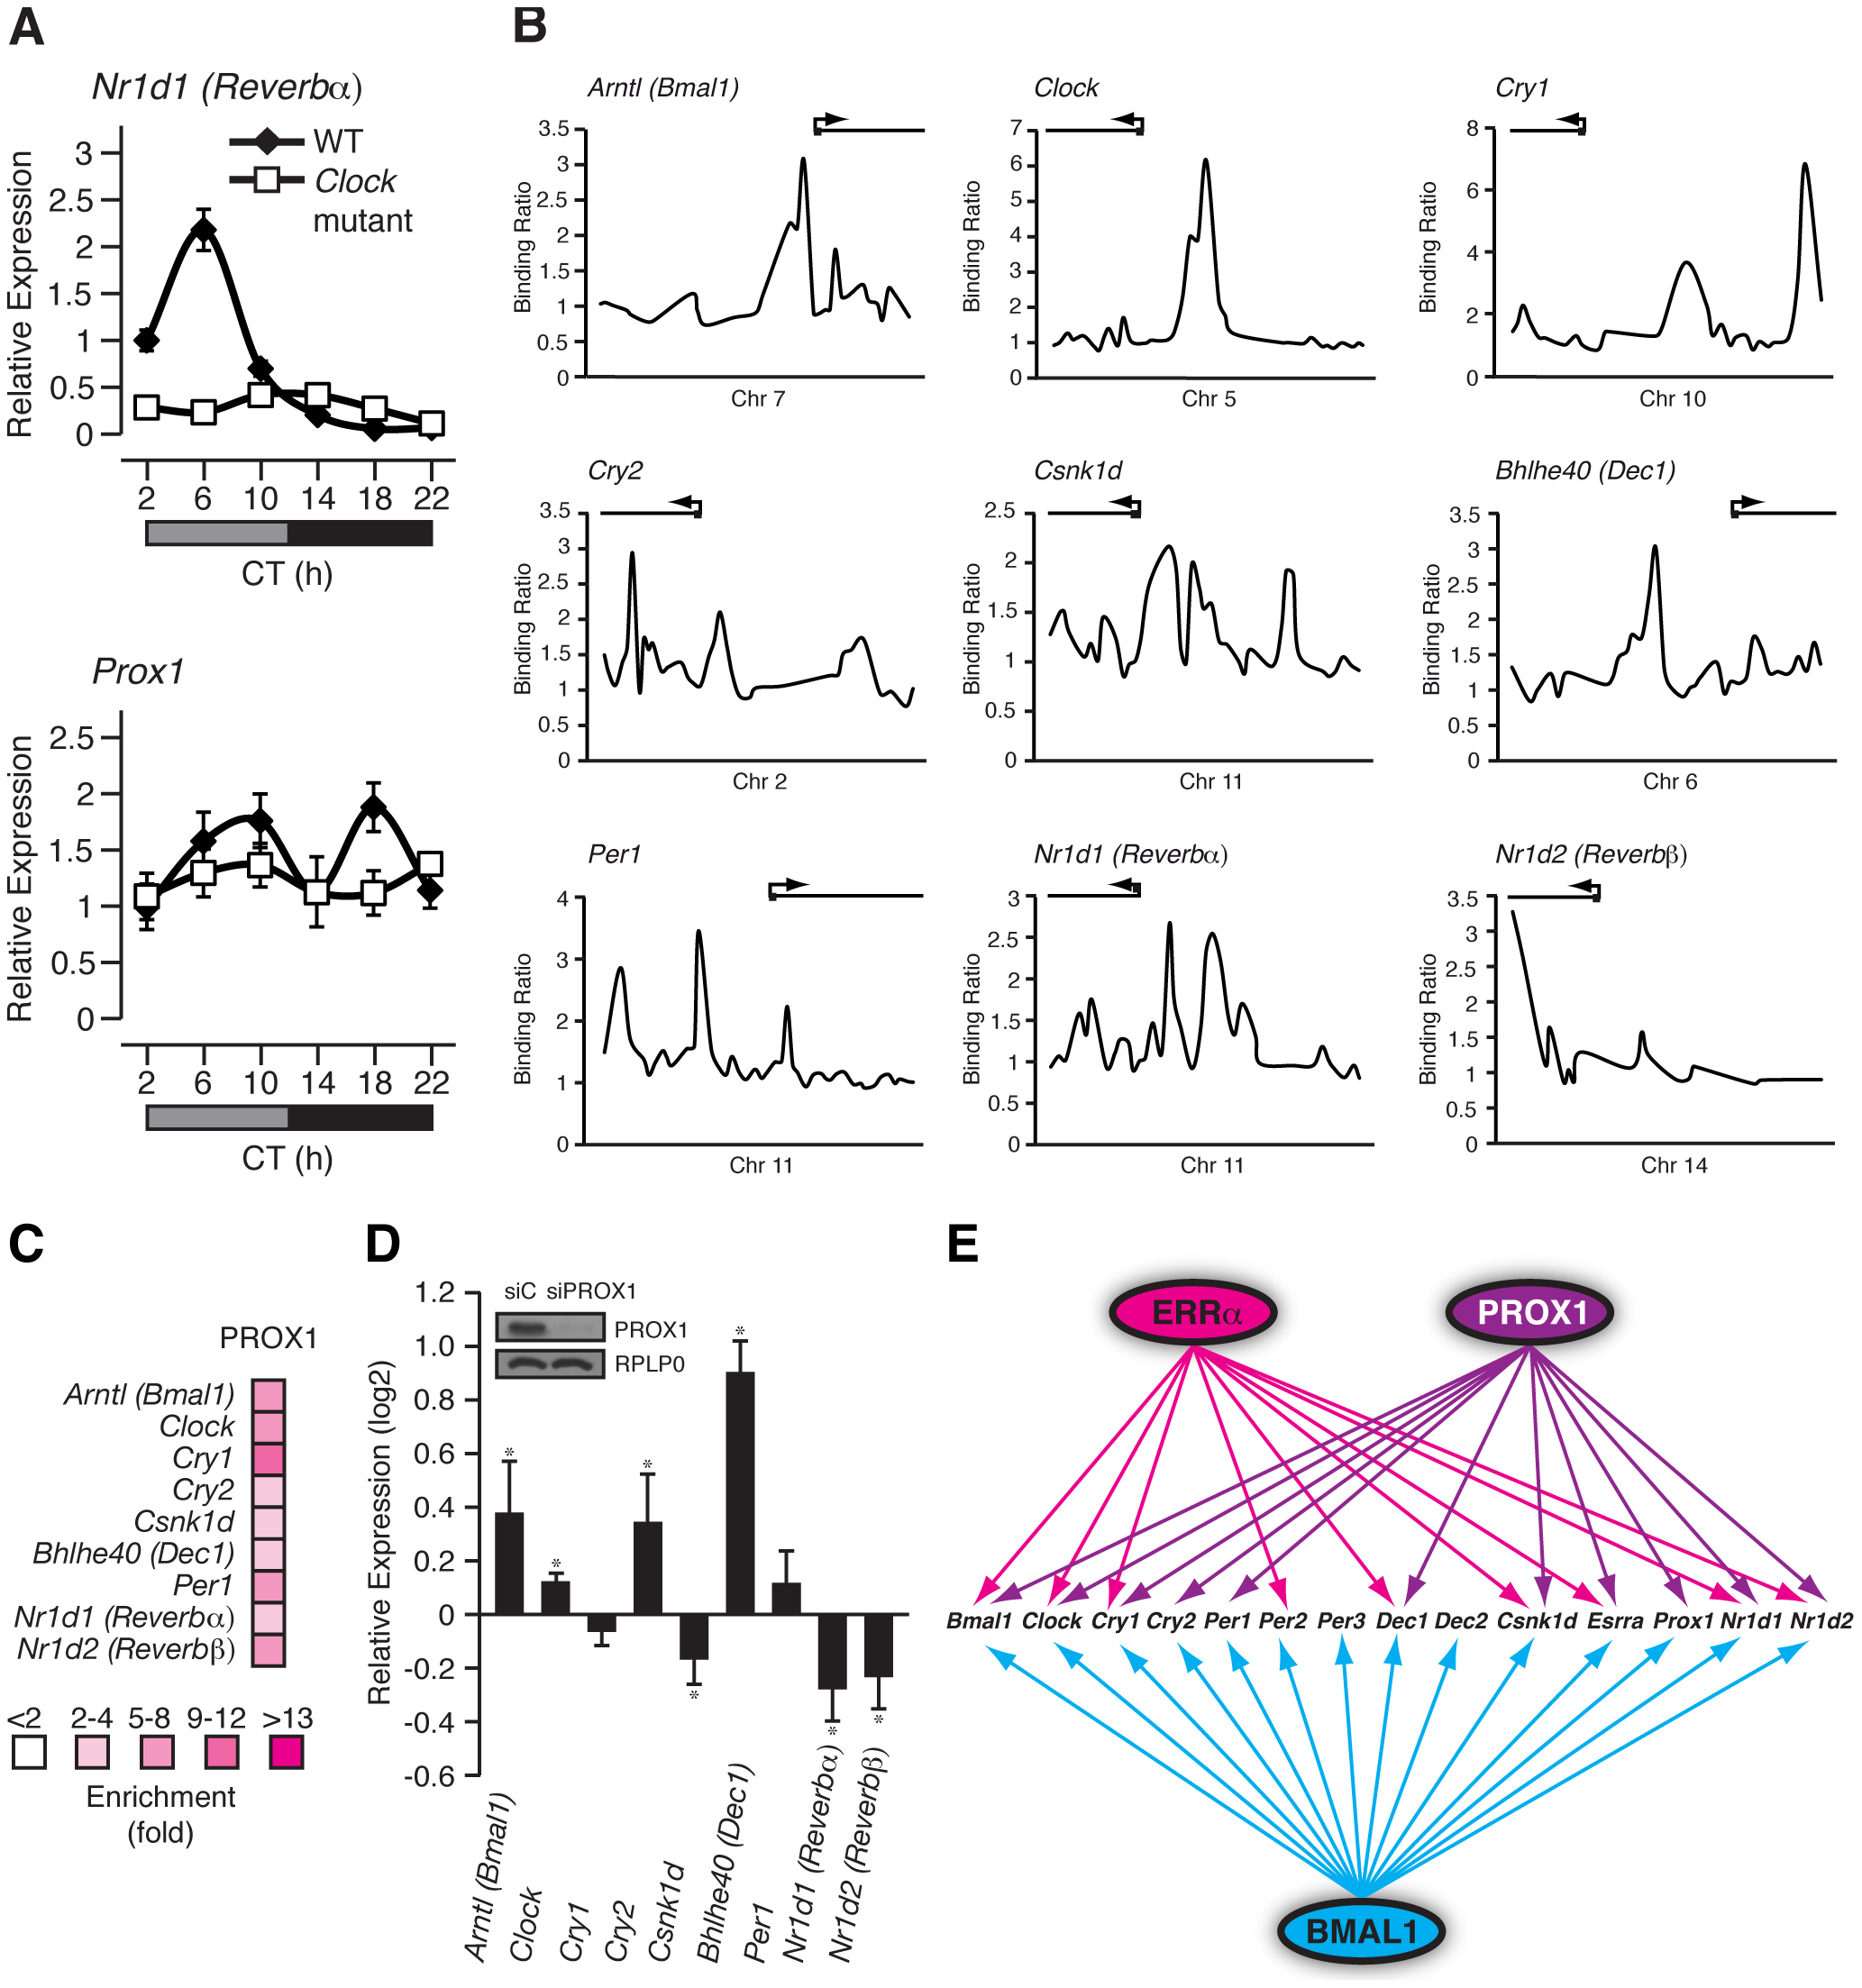 PROX1 is a regulator of the molecular clock that itself exhibits a rhythmic clock-dependent circadian expression.